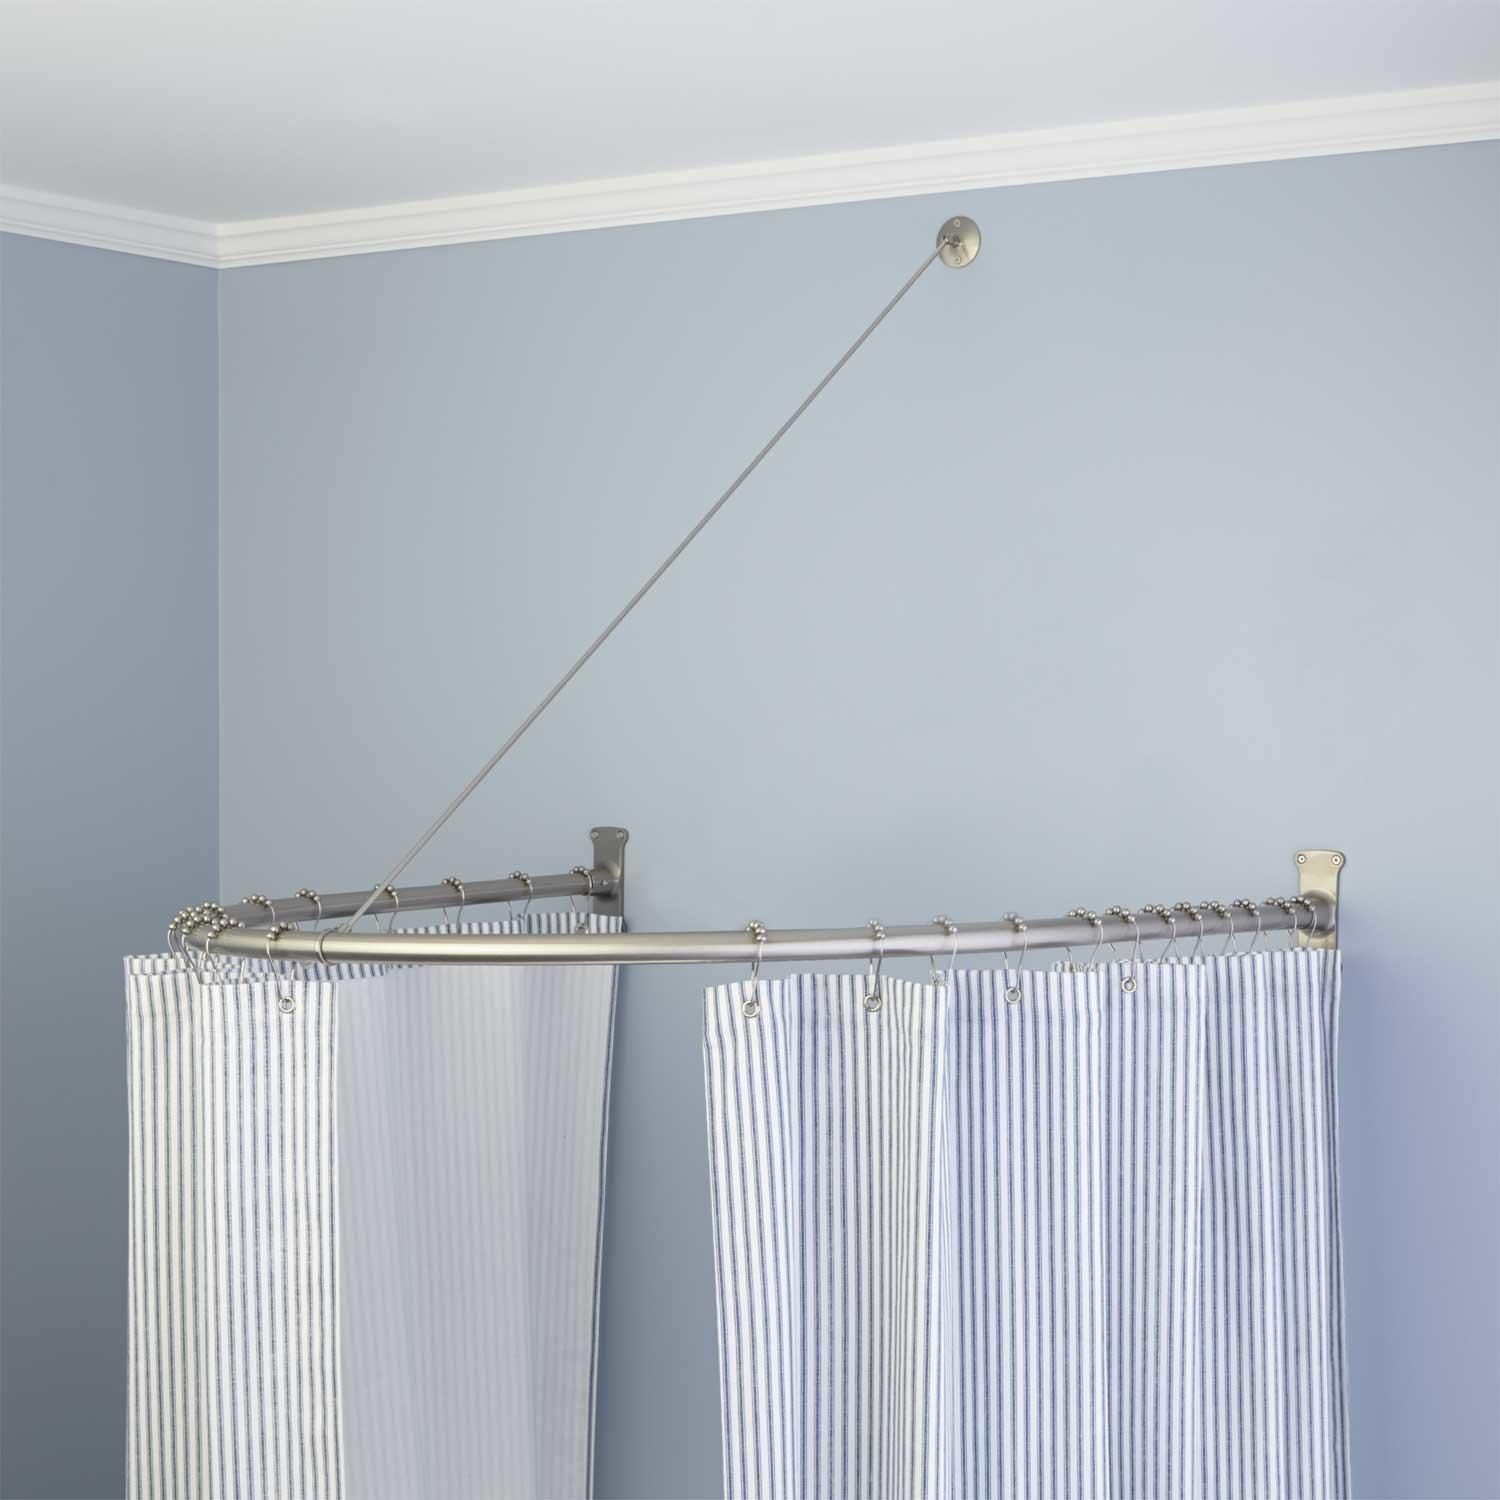 A Simple Way To Enclose A Shower Mounted Against A Single Wall